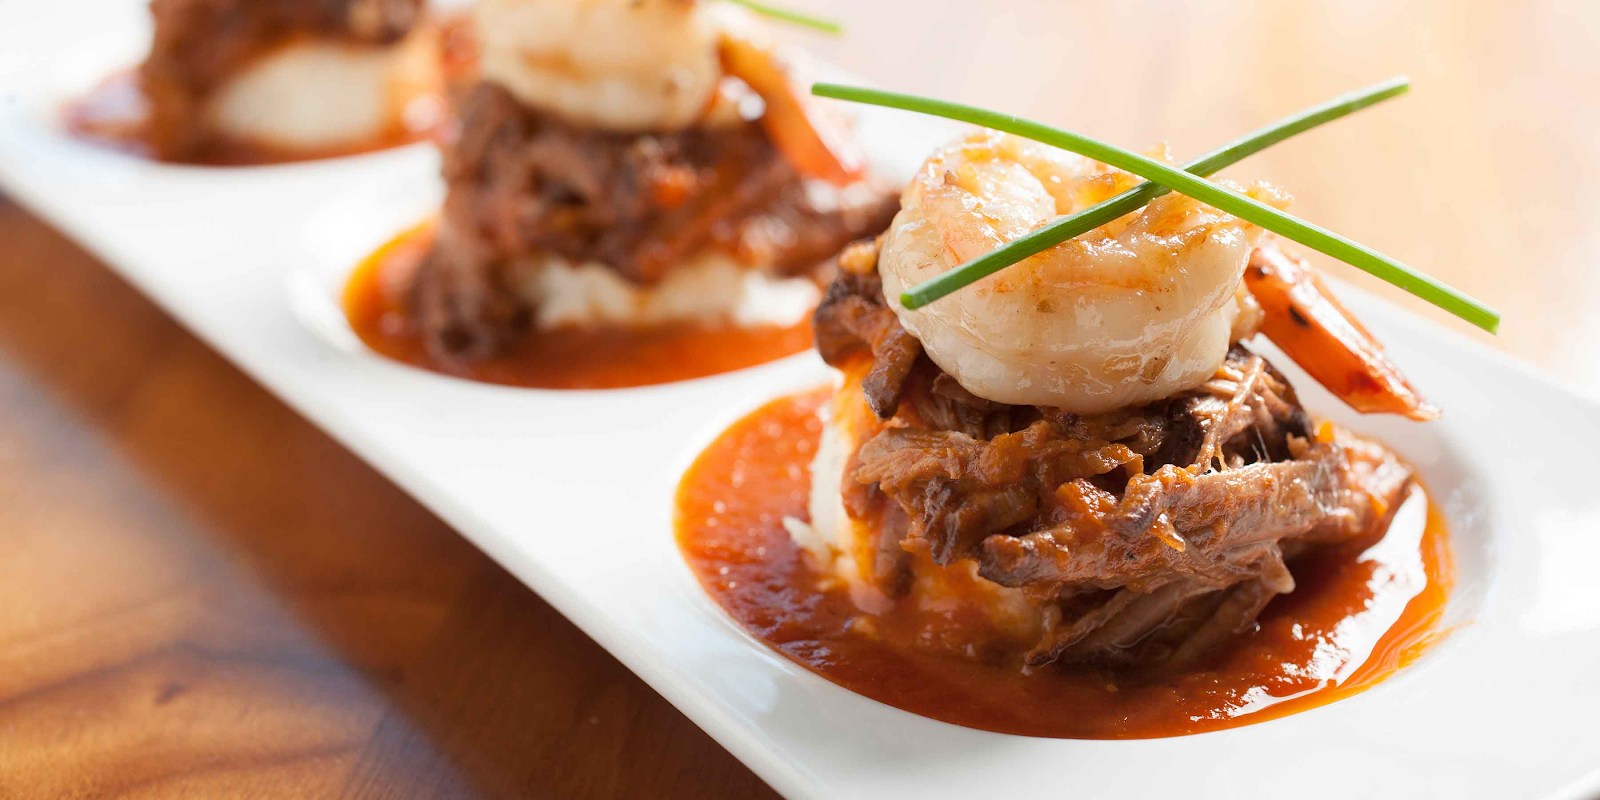 Dish from Hubbard Grille with shrimp and barbecue